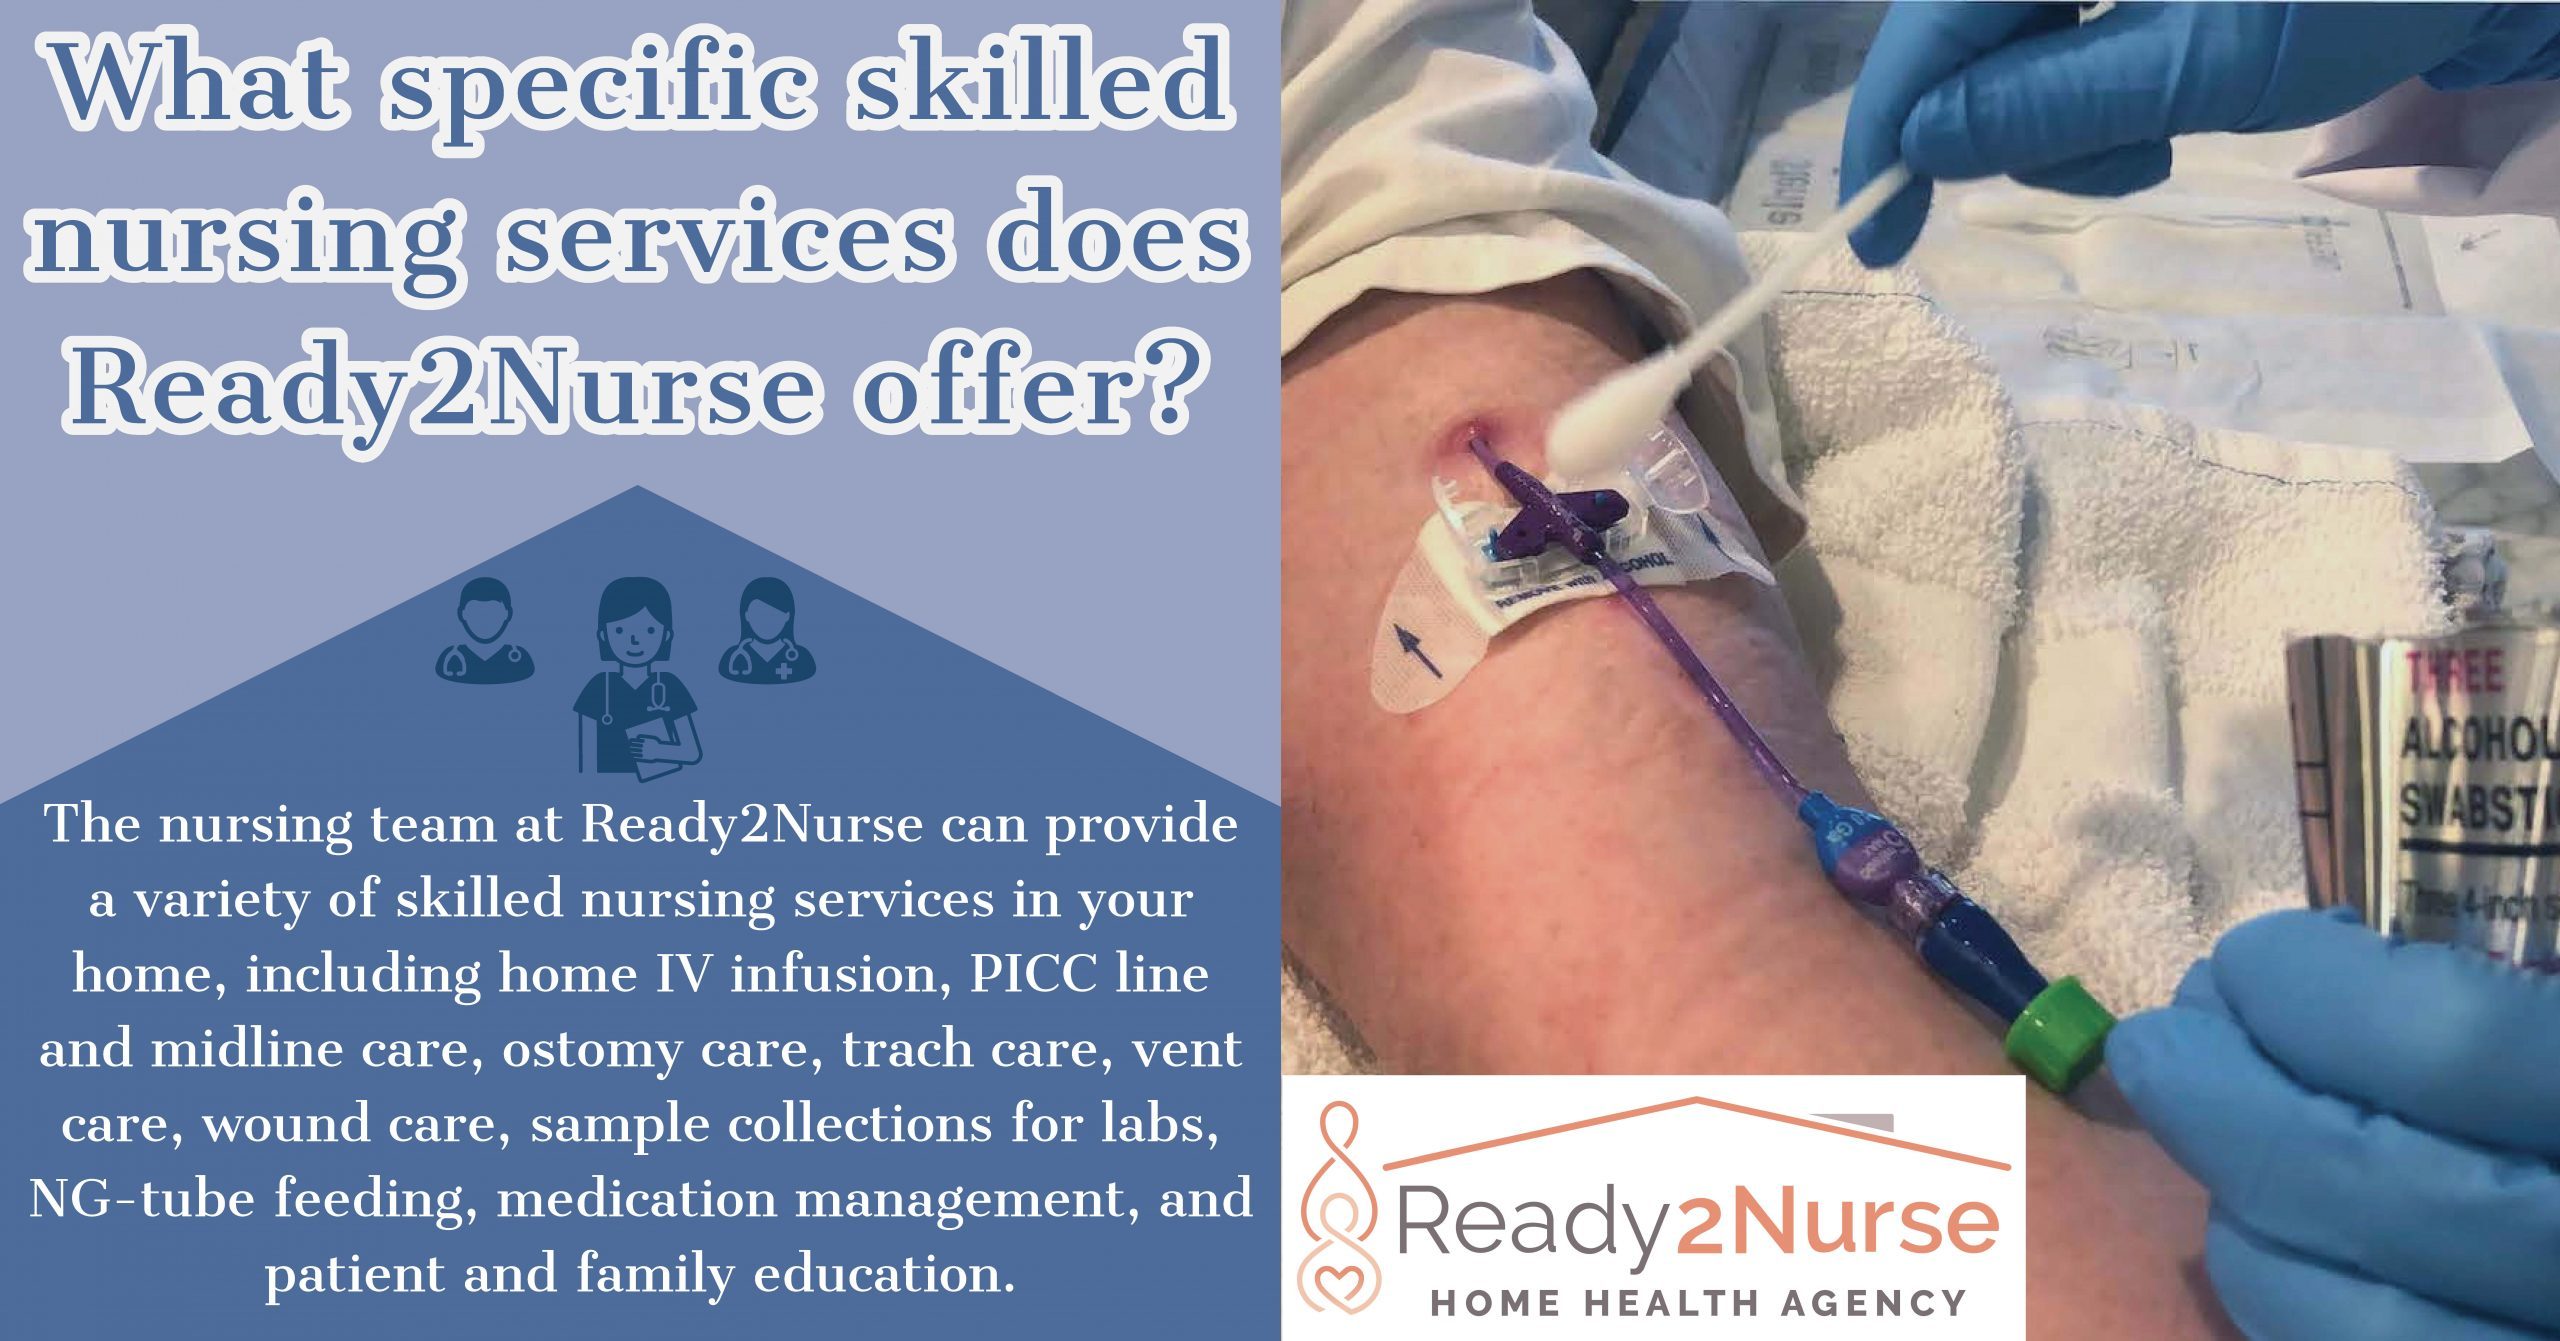 What specific skilled nursing services does Ready2Nurse offer?